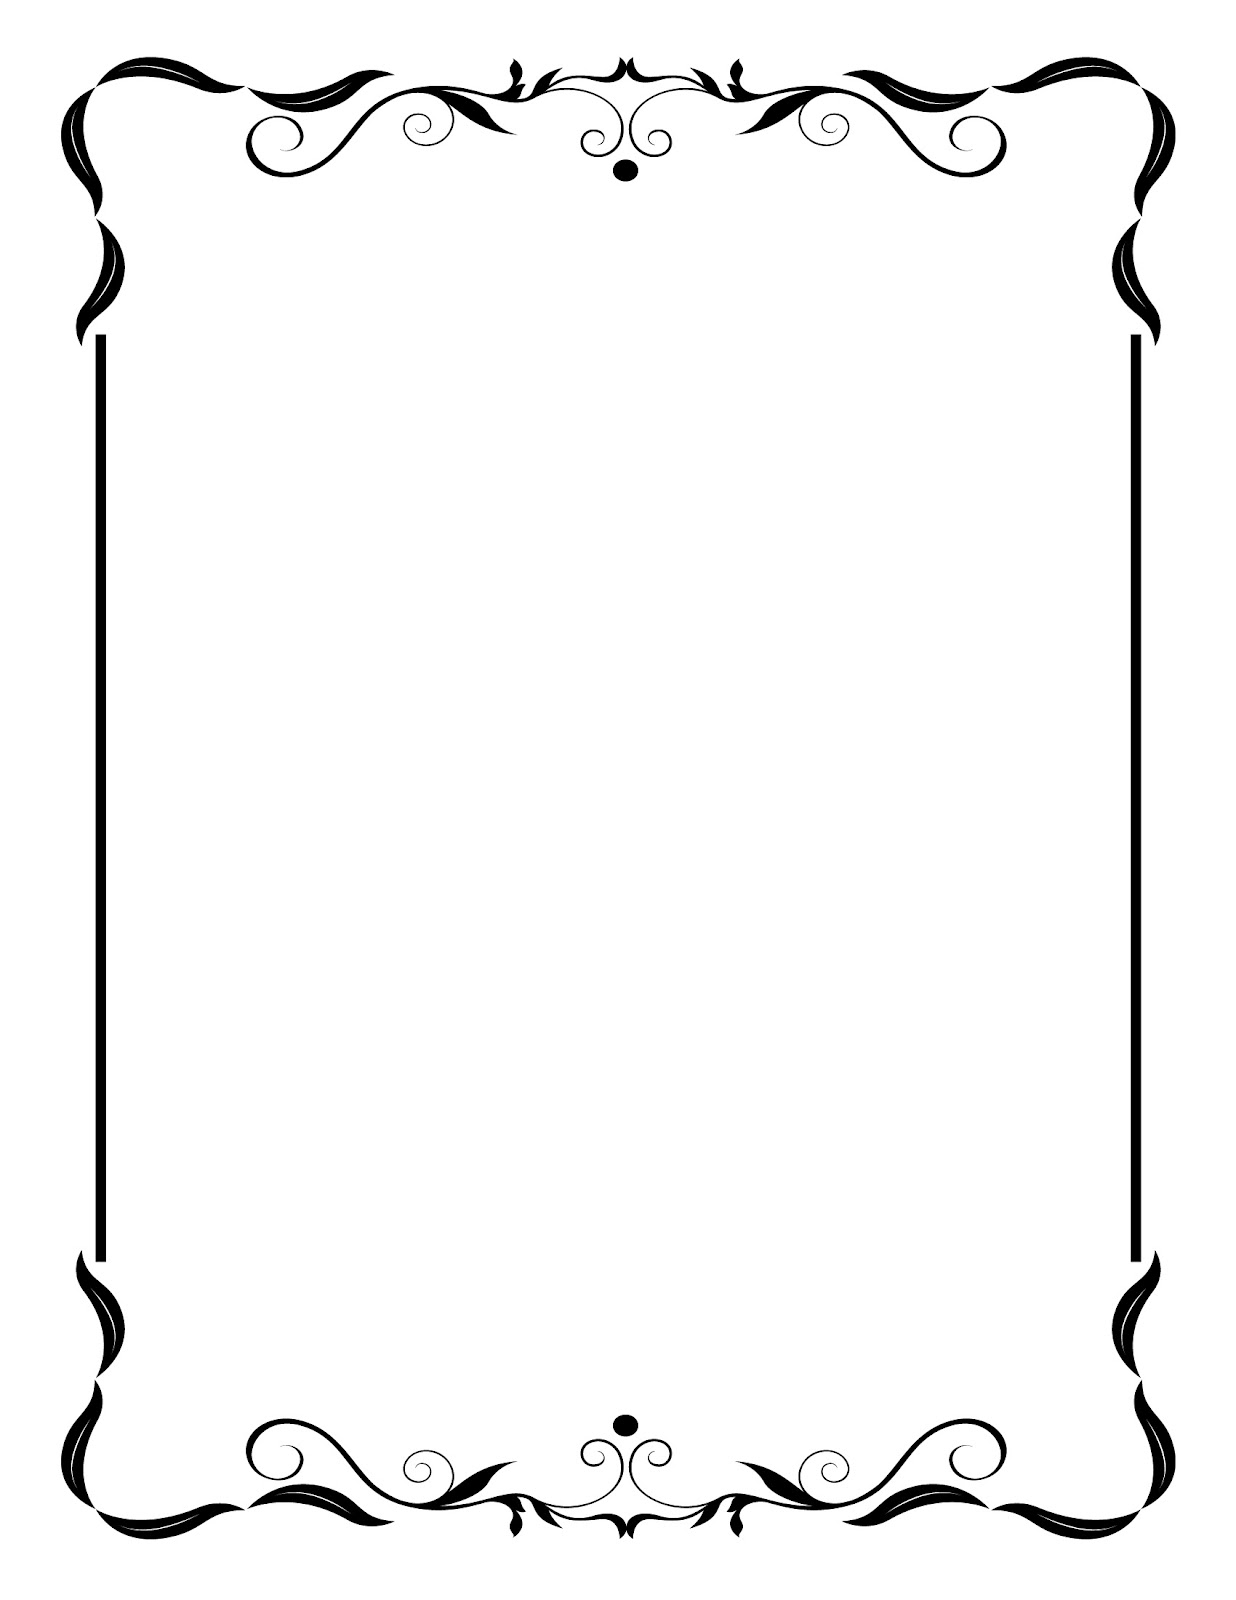 10 Vintage Wedding Border Clipart Free Cliparts That You Can